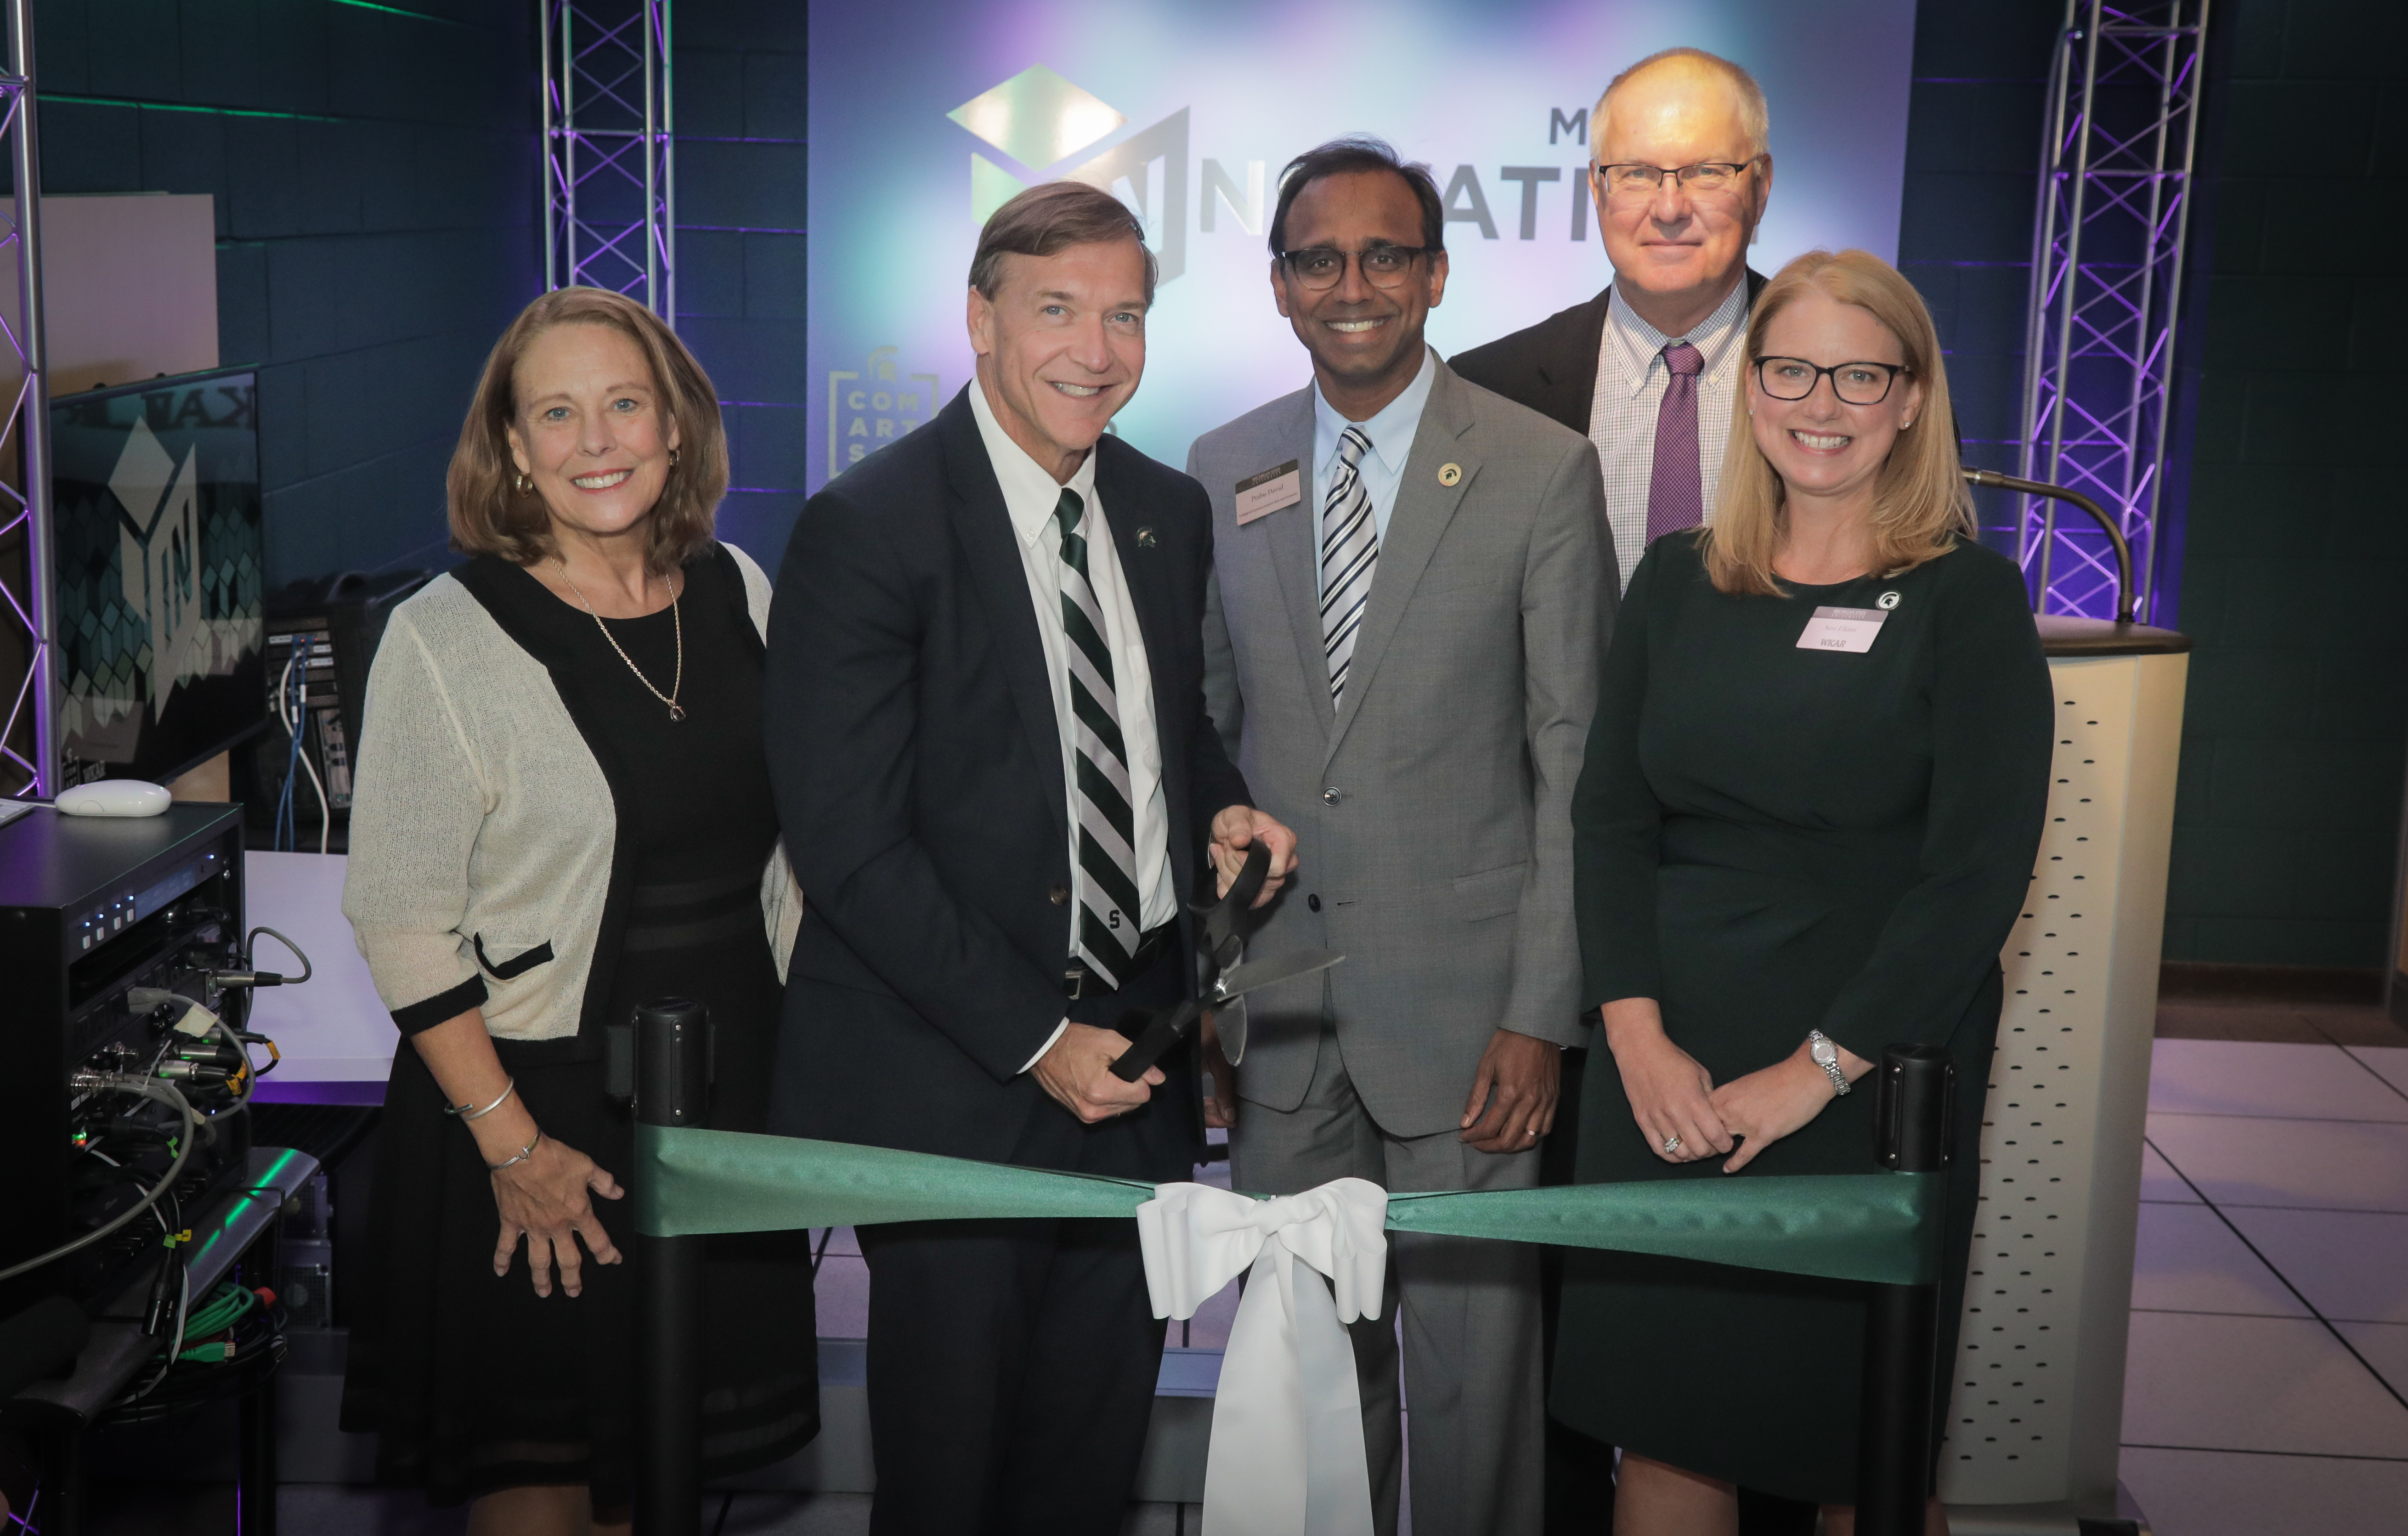 Photo of APTS Executive Vice President Lonna Thompson, MSU President Samuel Stanley Jr., Dean Prabu David, UNC-TV's Fred Engel, and WKAR General Manager Susi Elkins cutting the ribbon to open the NextGen Media Innovation Lab.